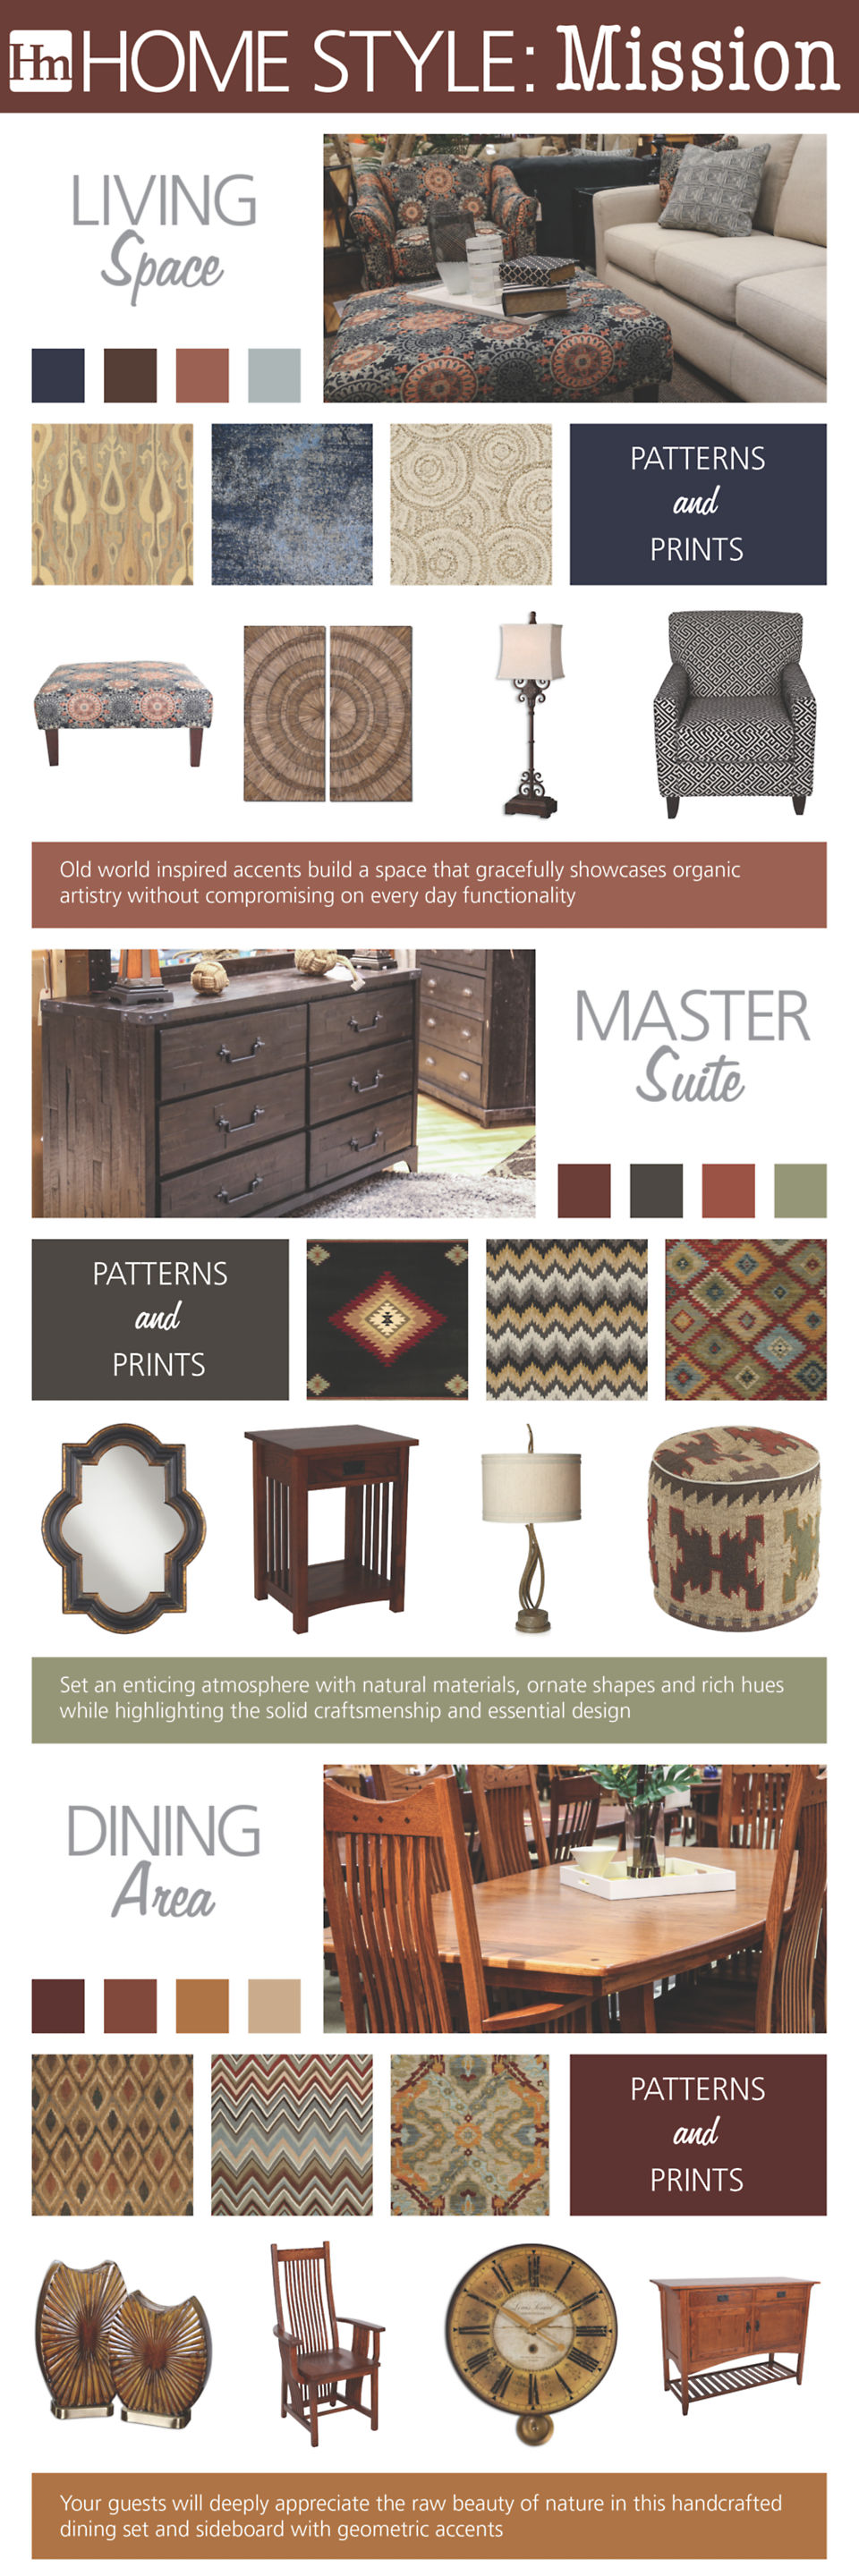 Mission interior design style infographic